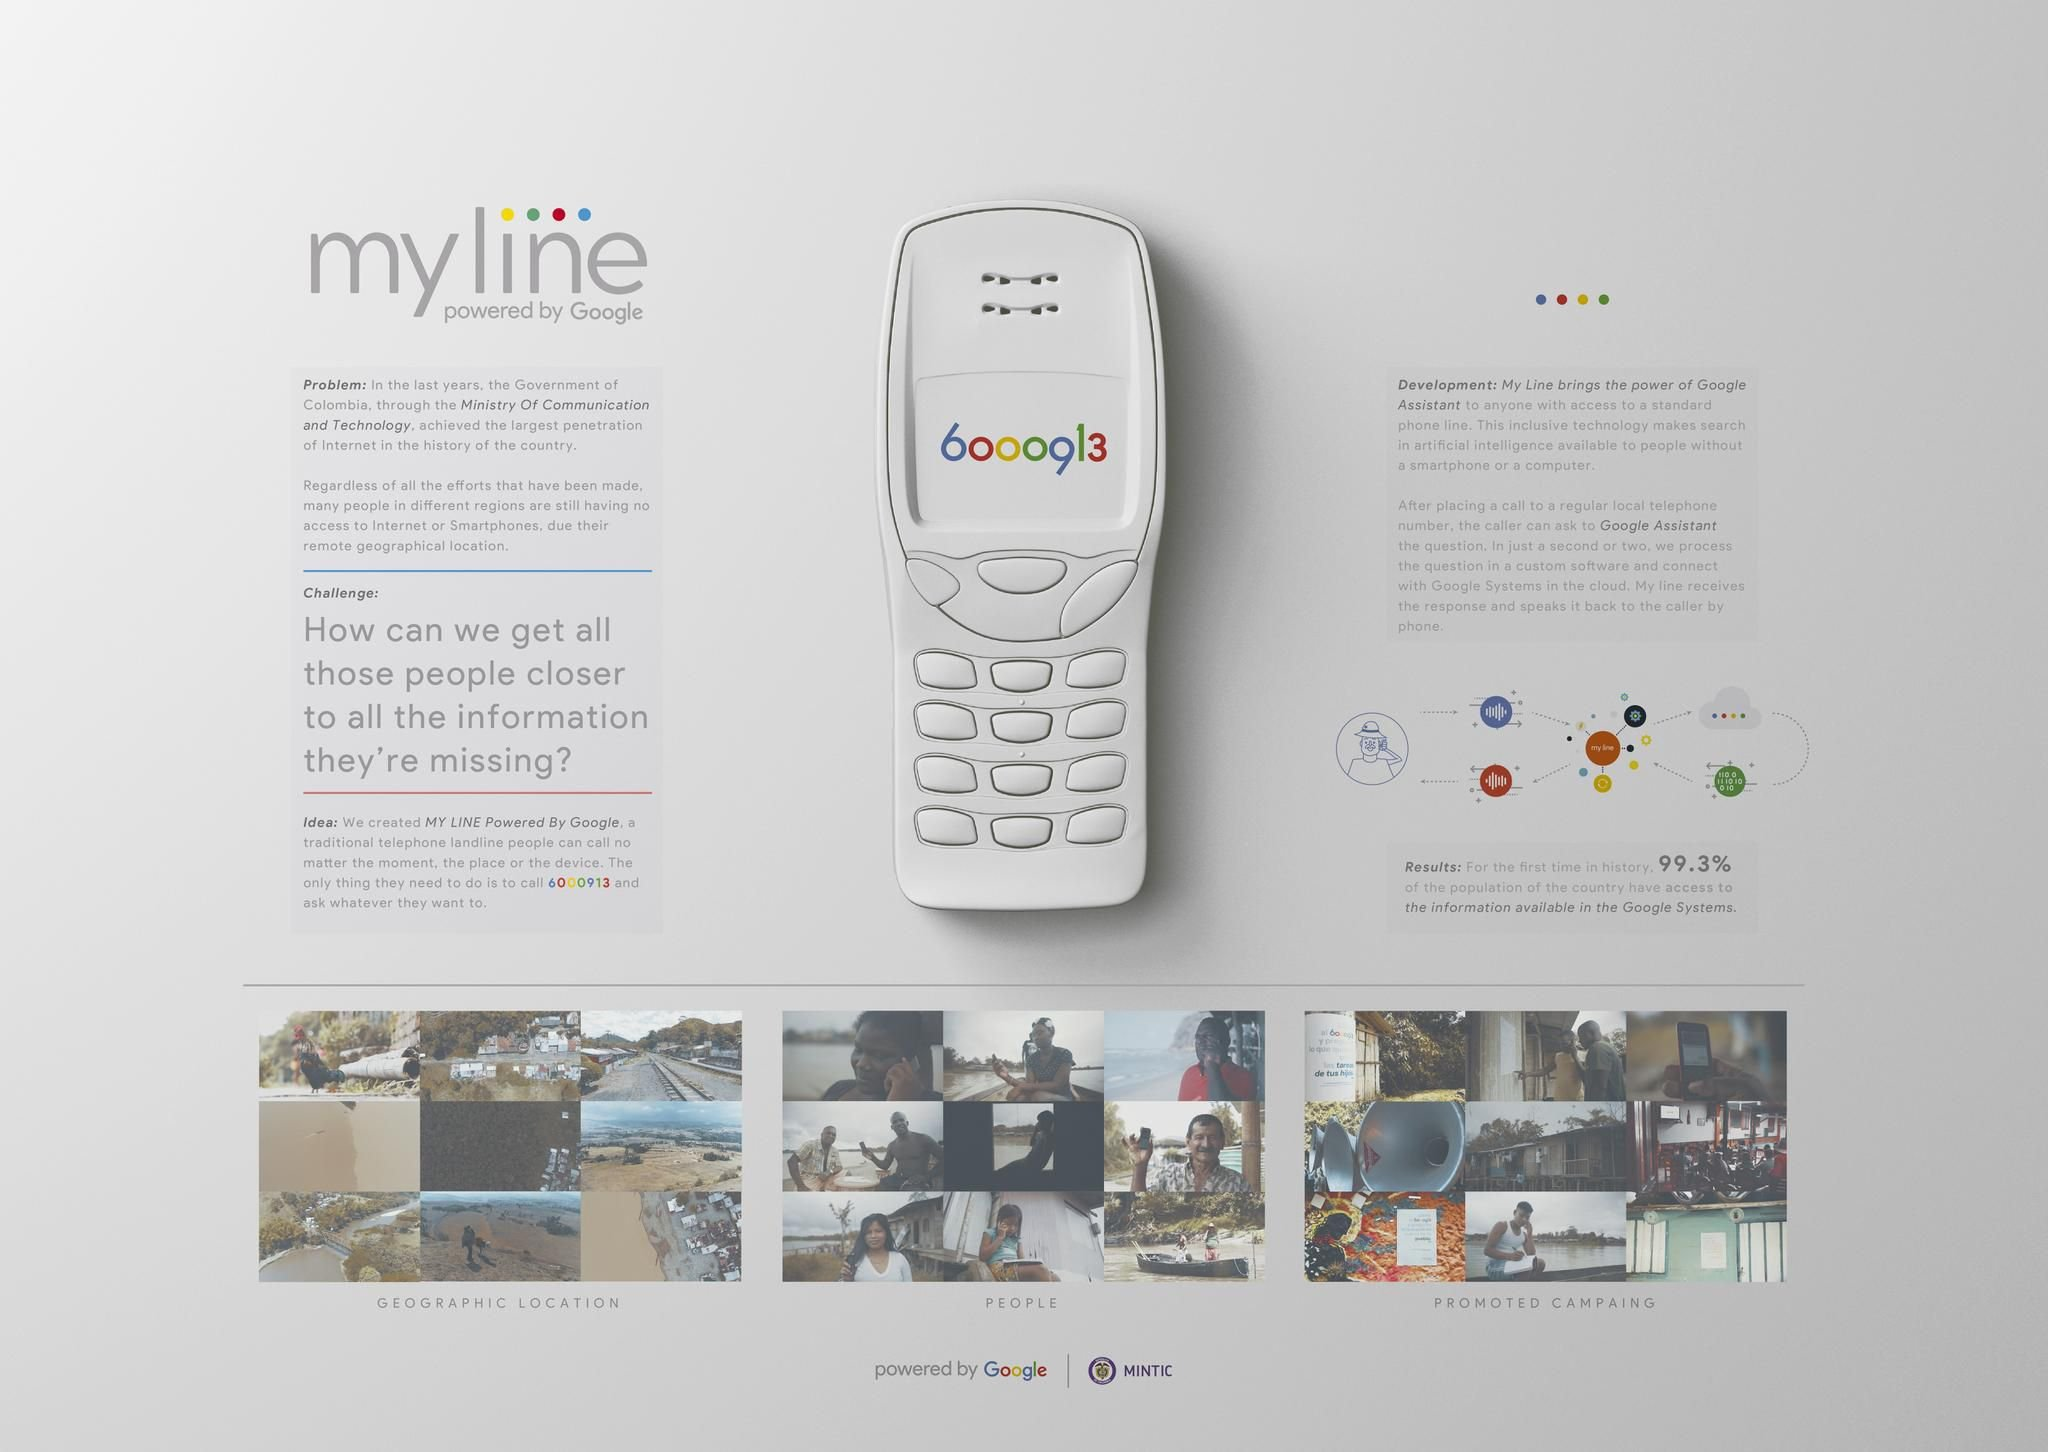 my-line-service-my-line-powered-by-google-presentation-image-2000-40832.jpg